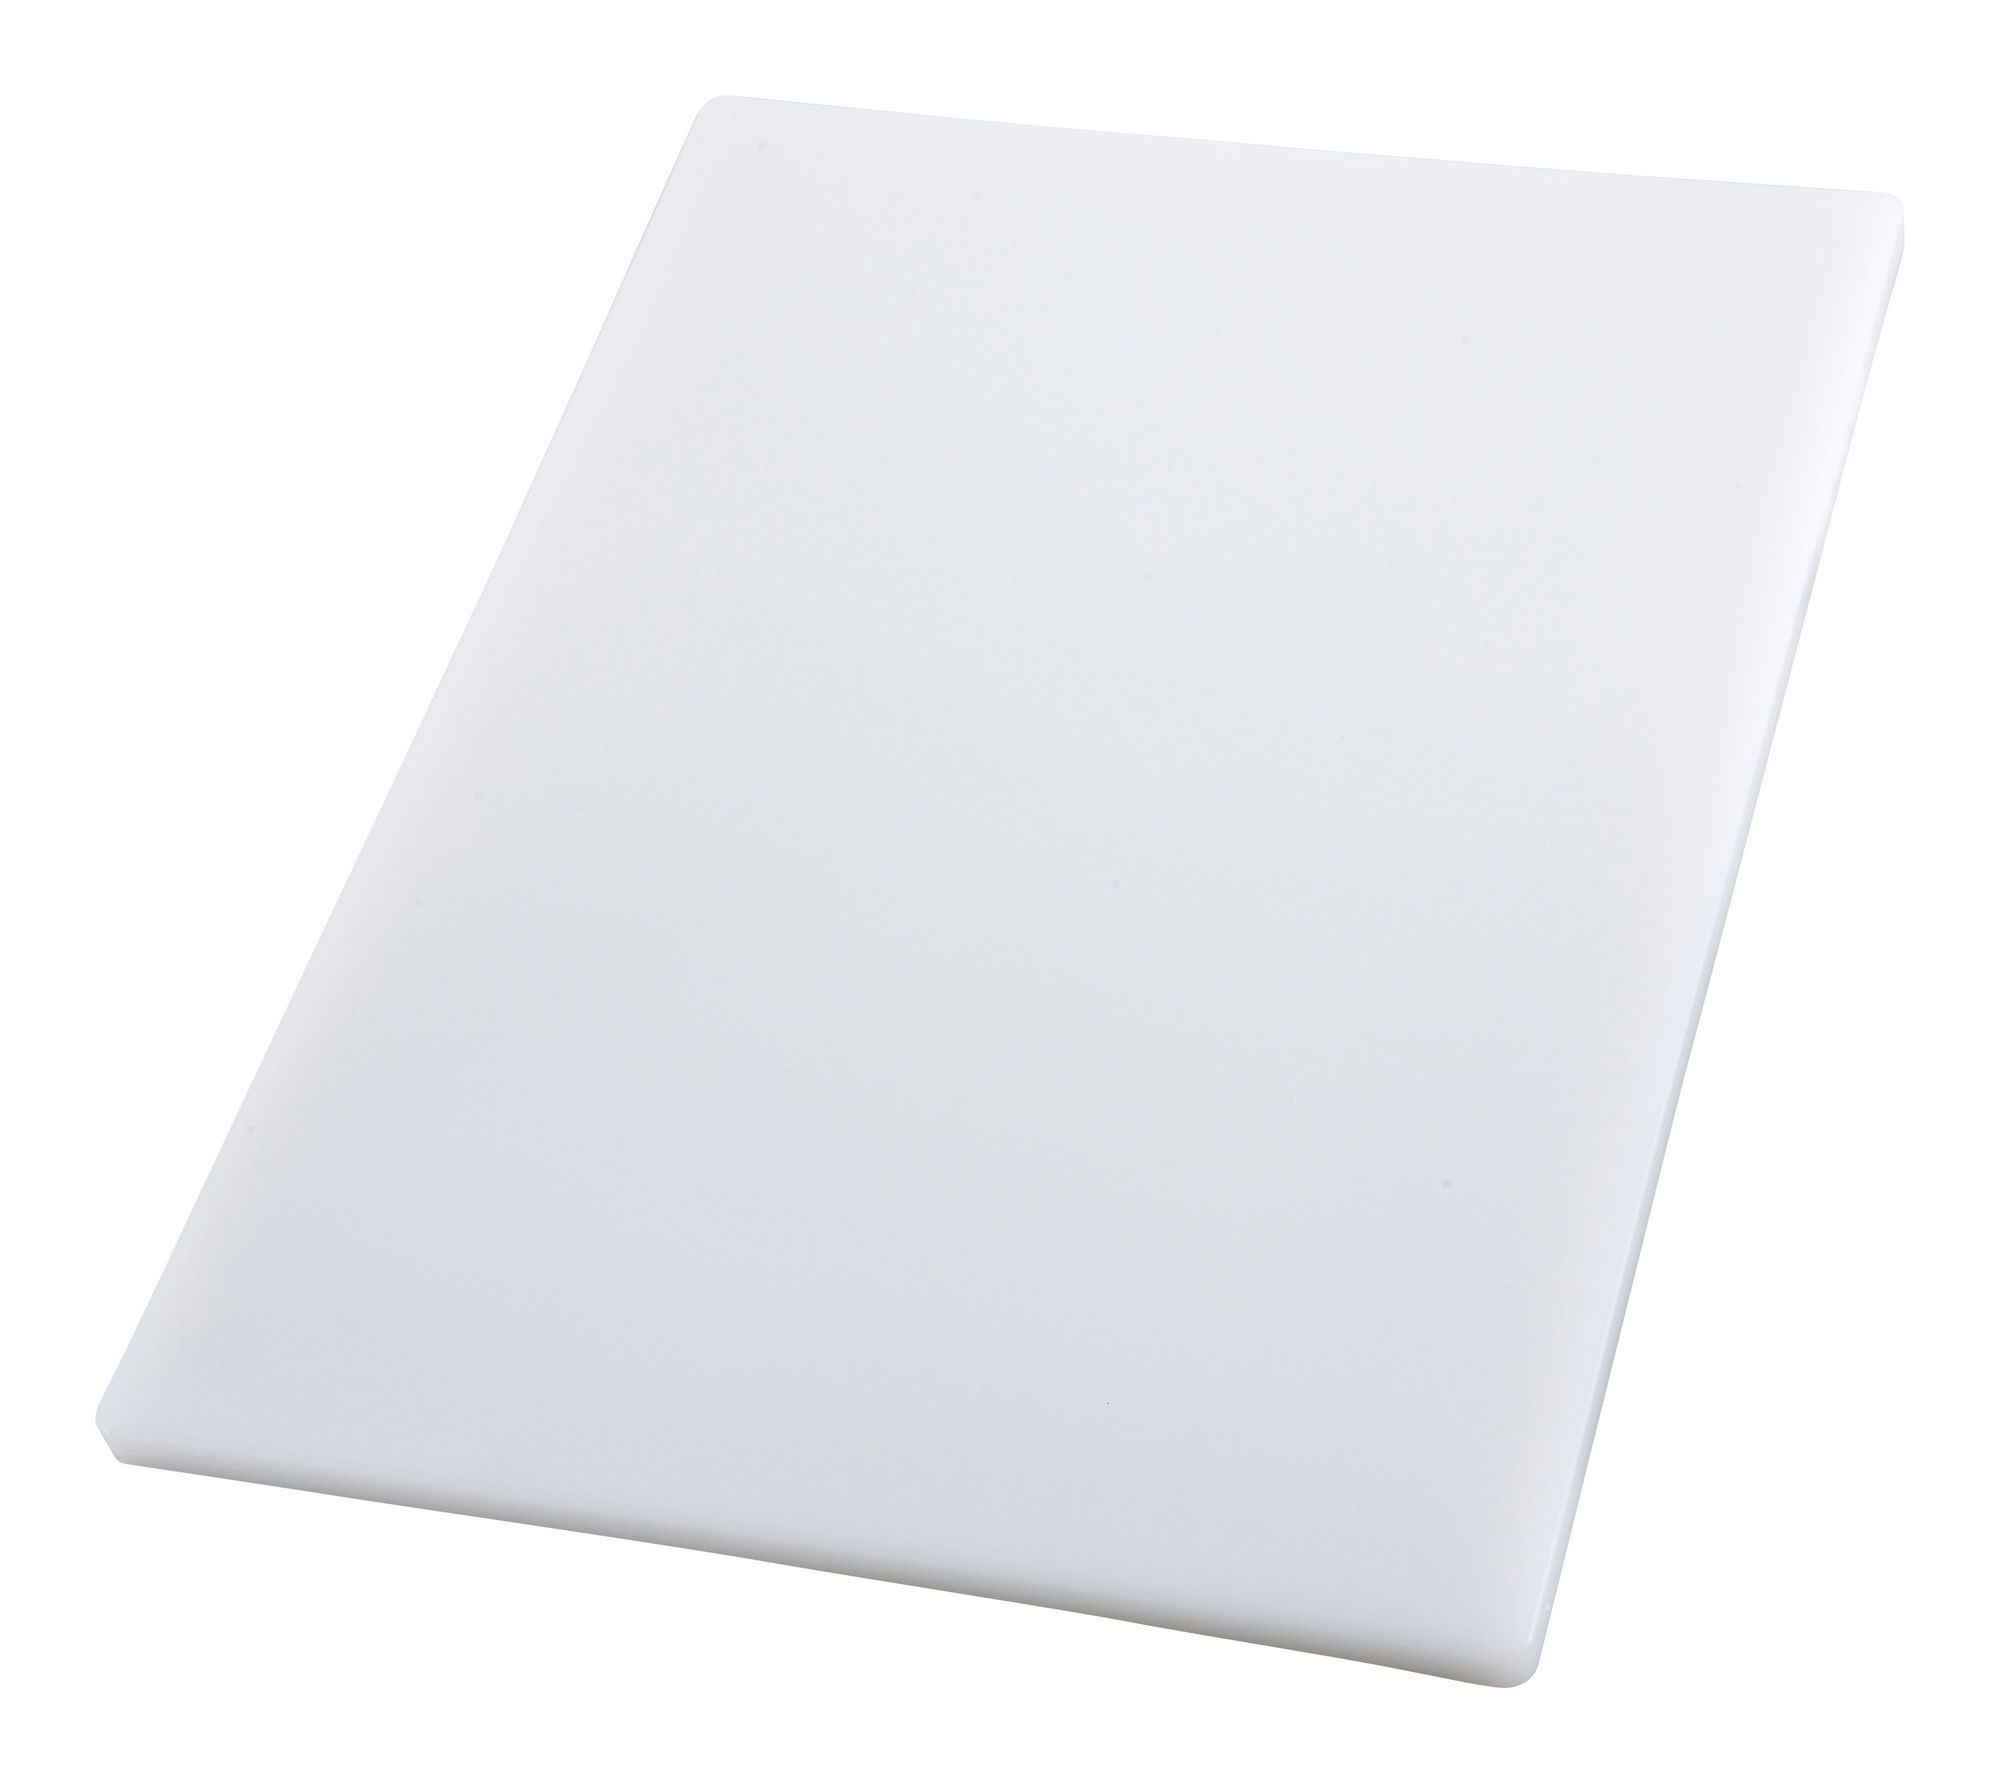 "Winco CBH-1218 White Plastic Cutting Board 12"" x 18"" x 3/4"""